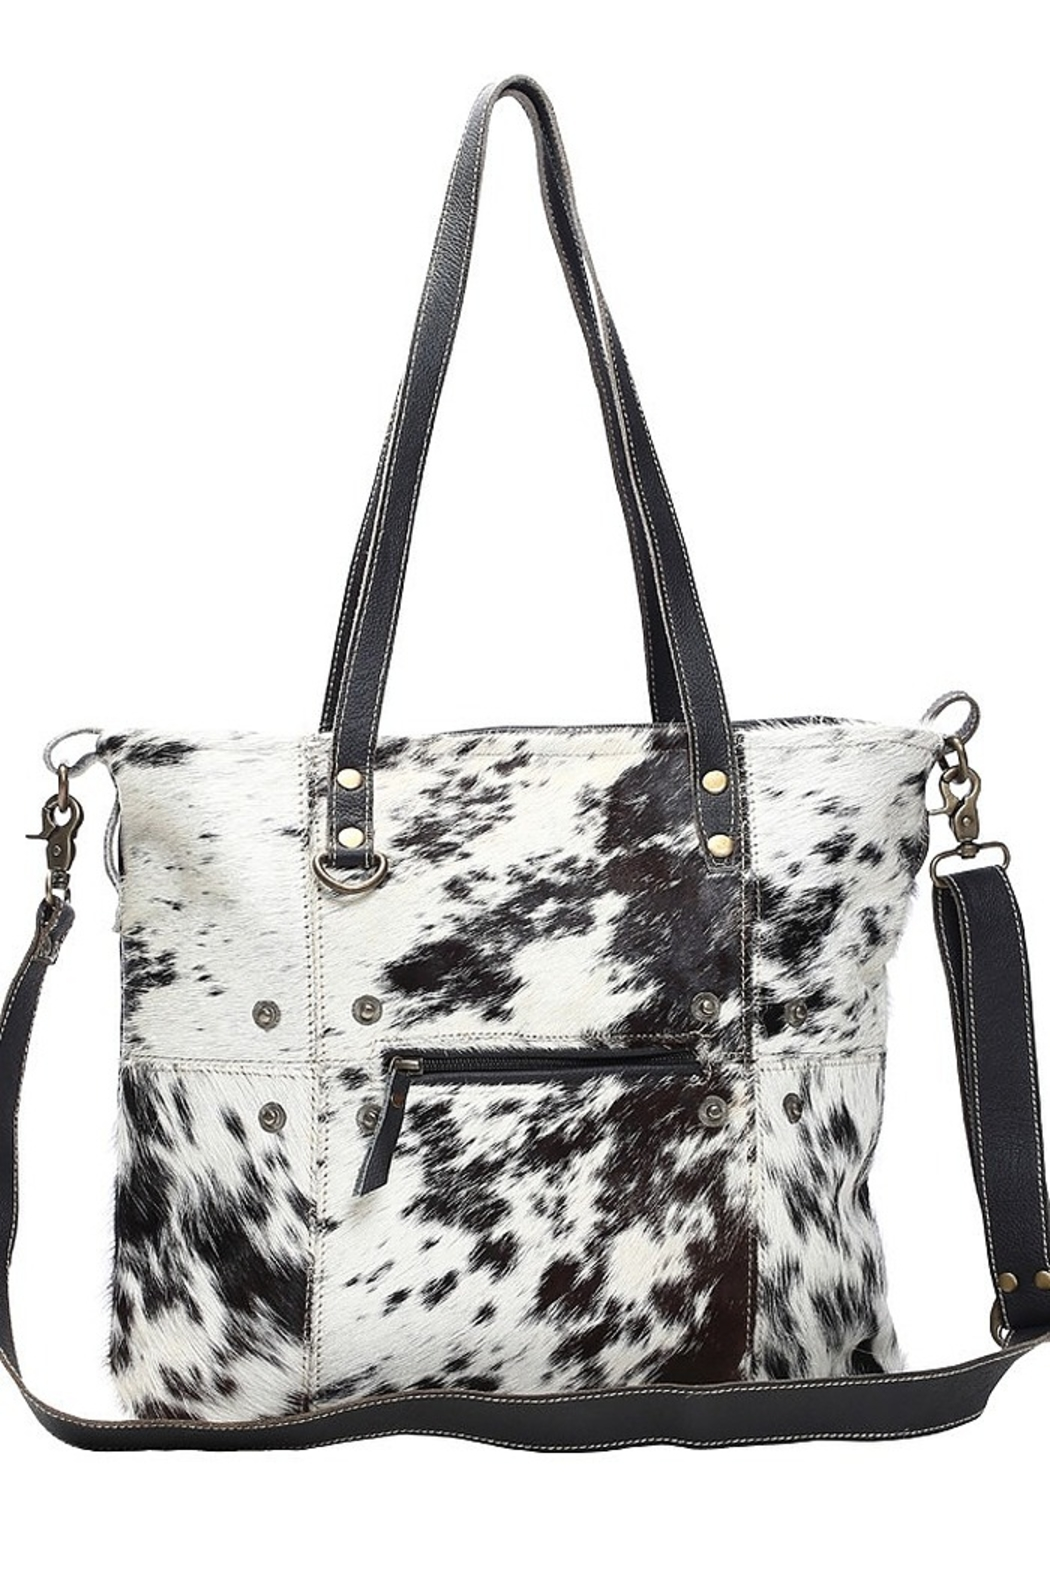 Myra Bags Black & White Cowhide Shade Tote Bag - Main Image